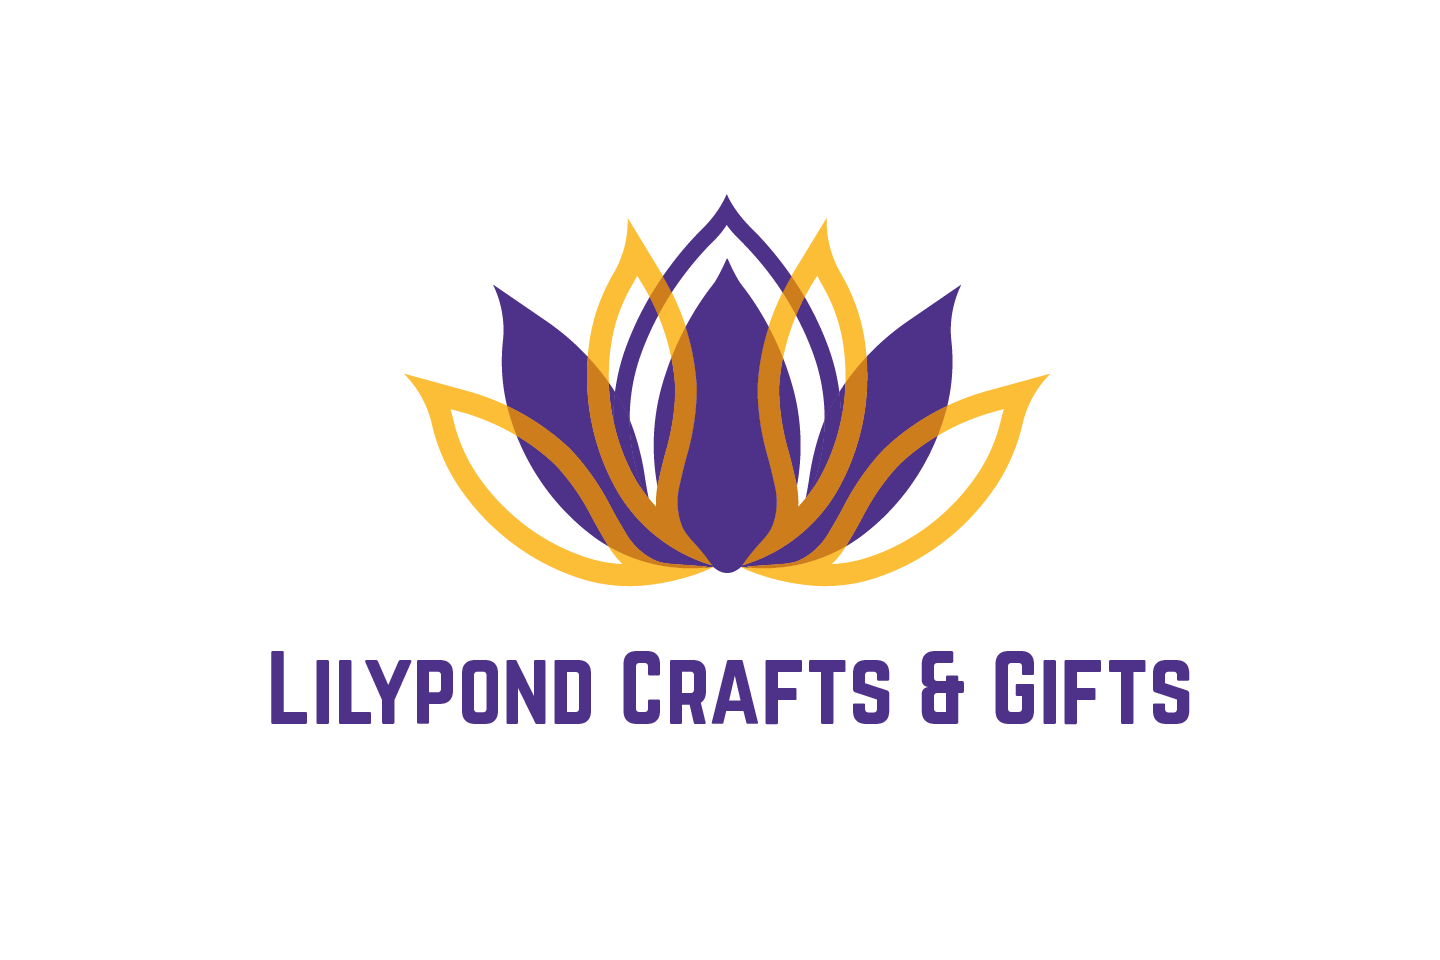 Lilypond Crafts & Gifts